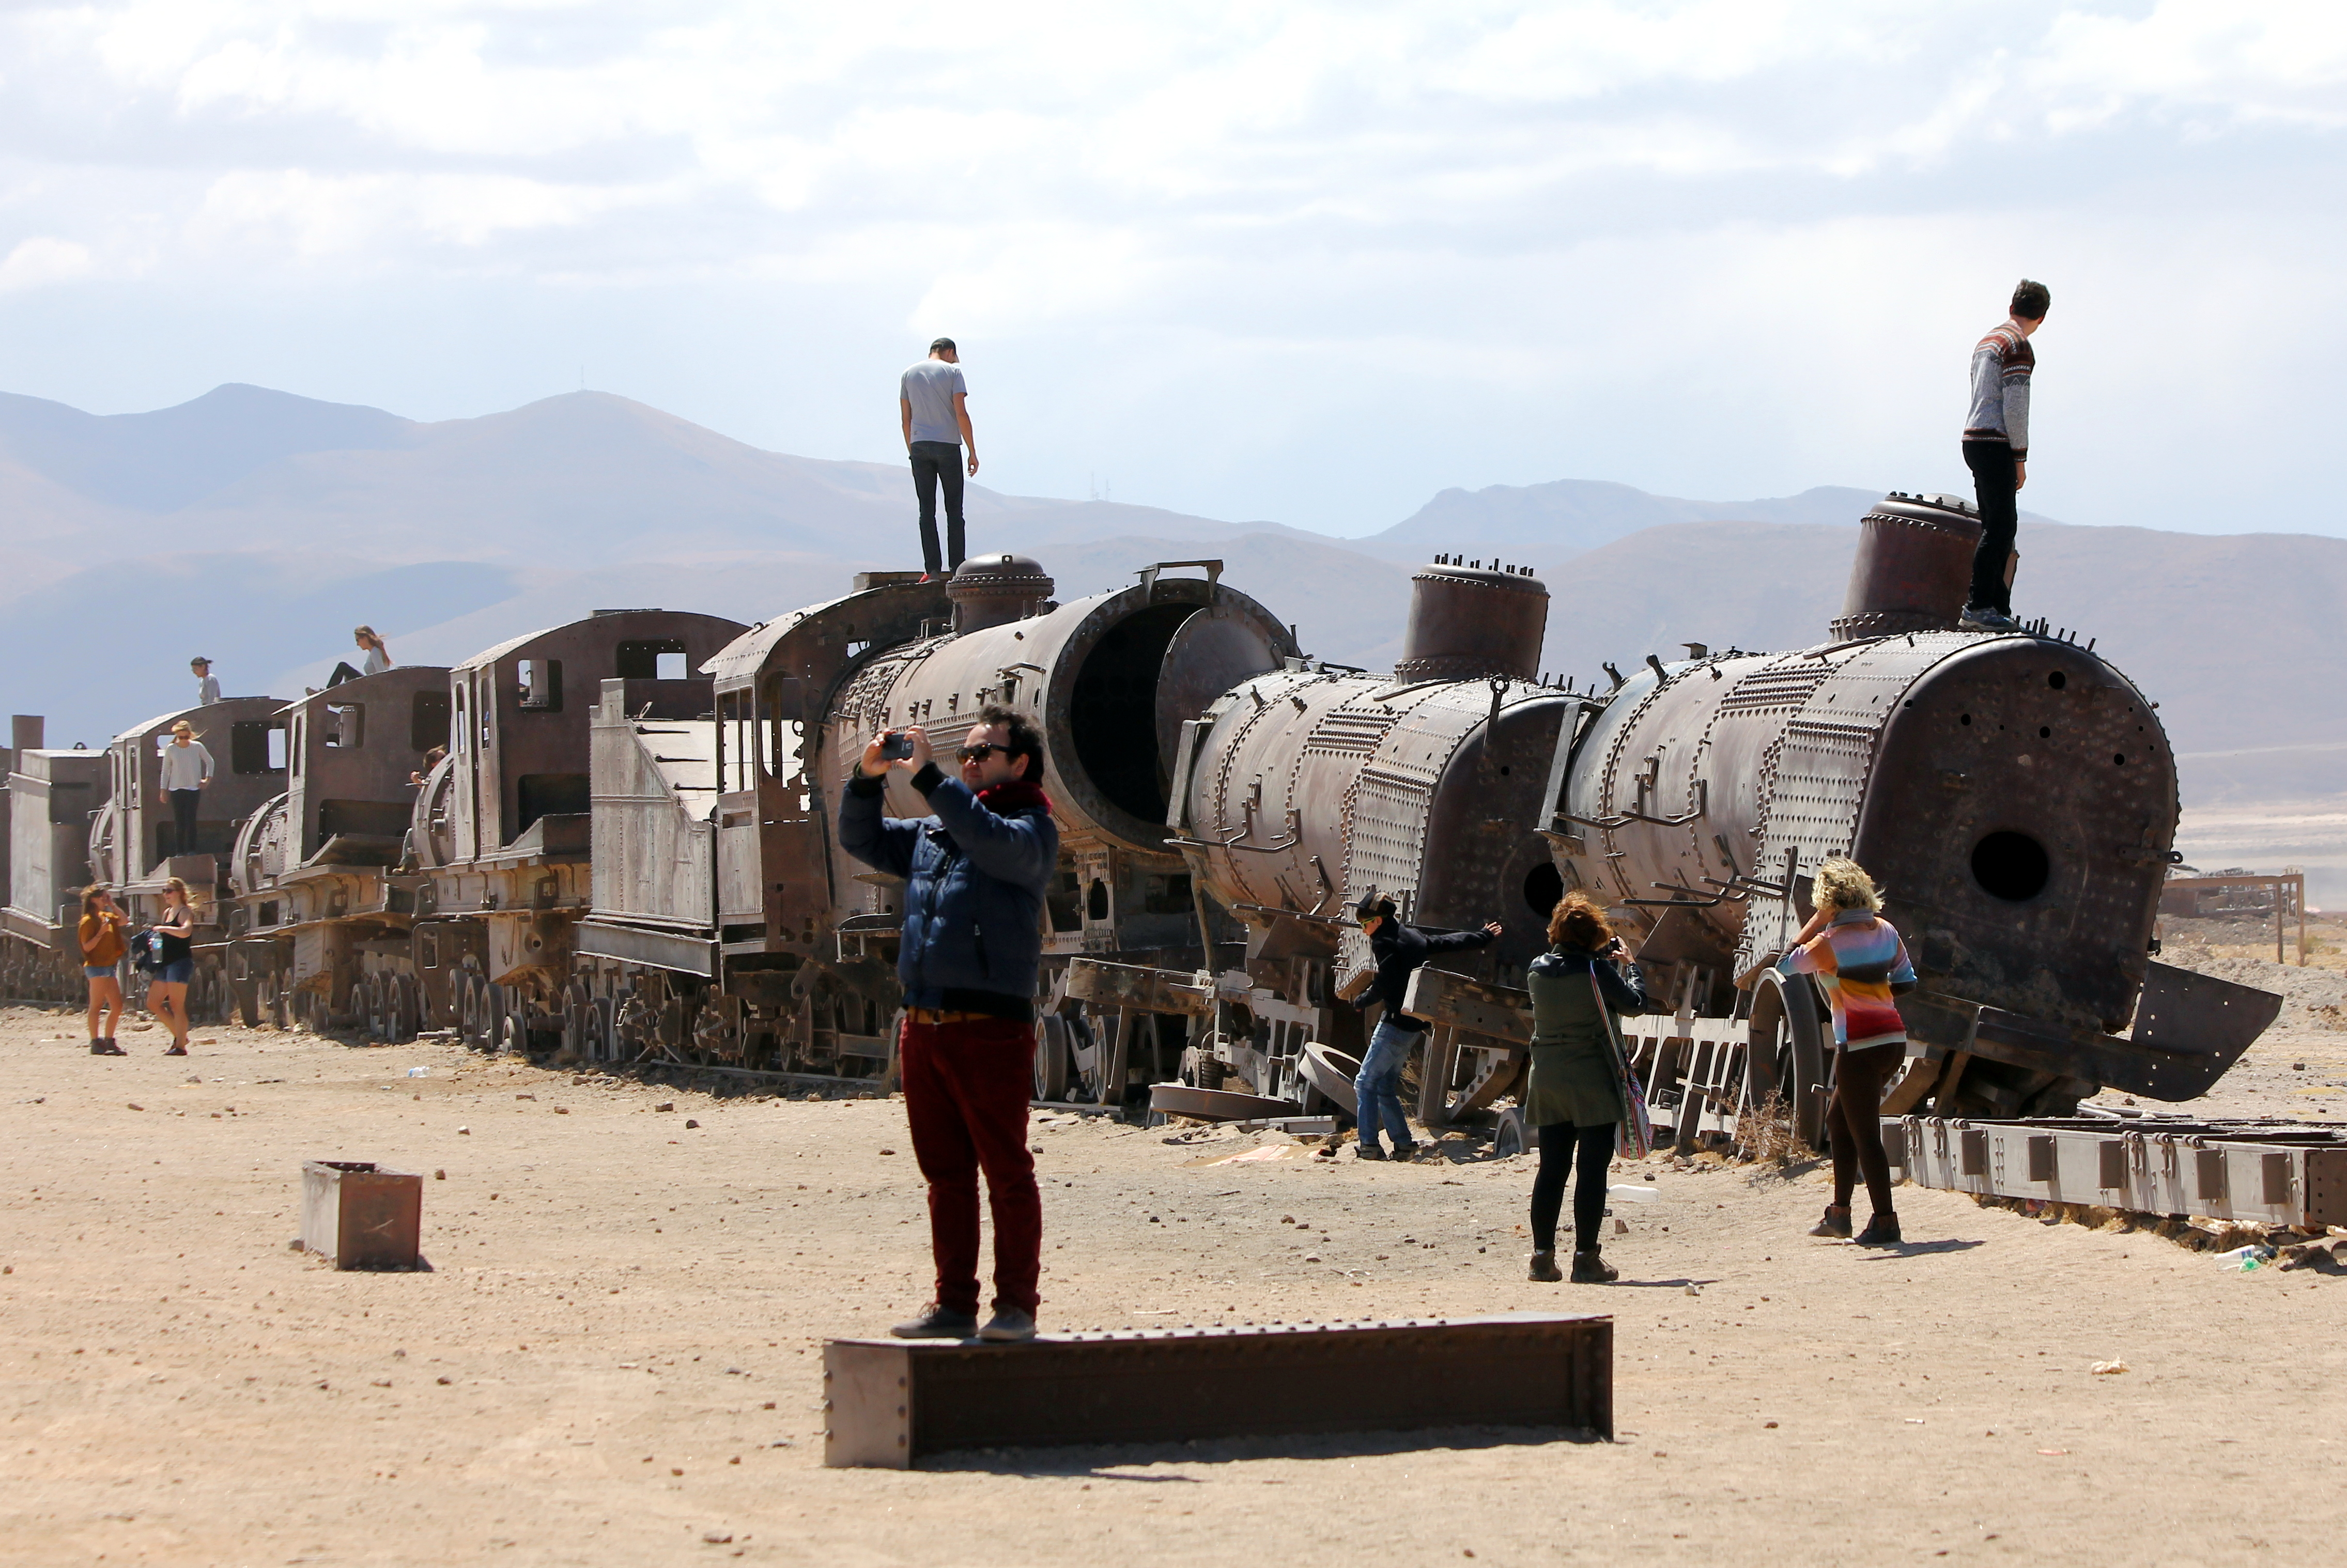 The Train Cemetery on the outskirts of Uyuni, southern Bolivia. September 3, 2015.